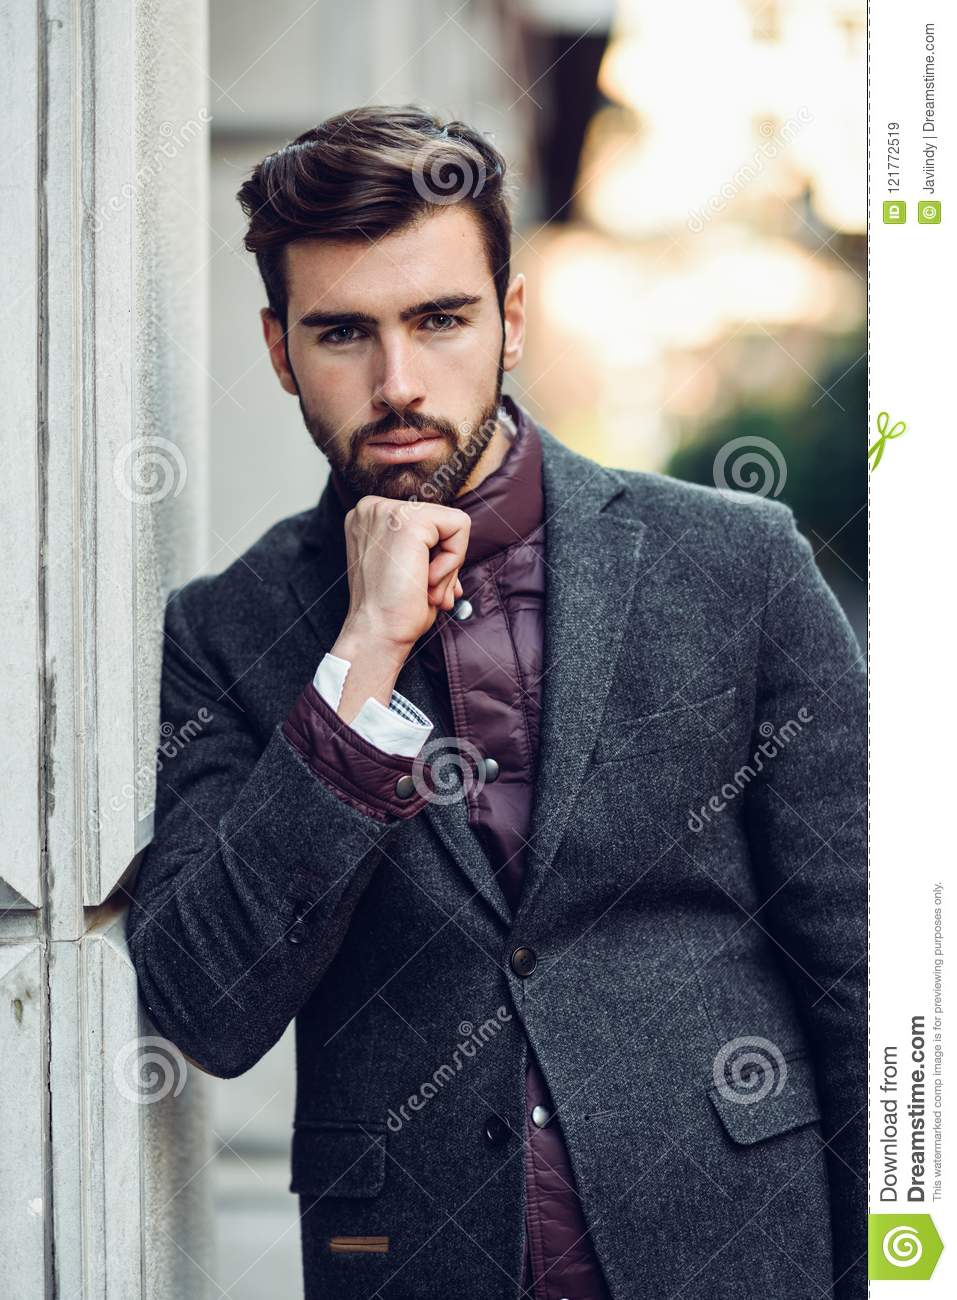 young bearded man in urban background wearing british elegant suit